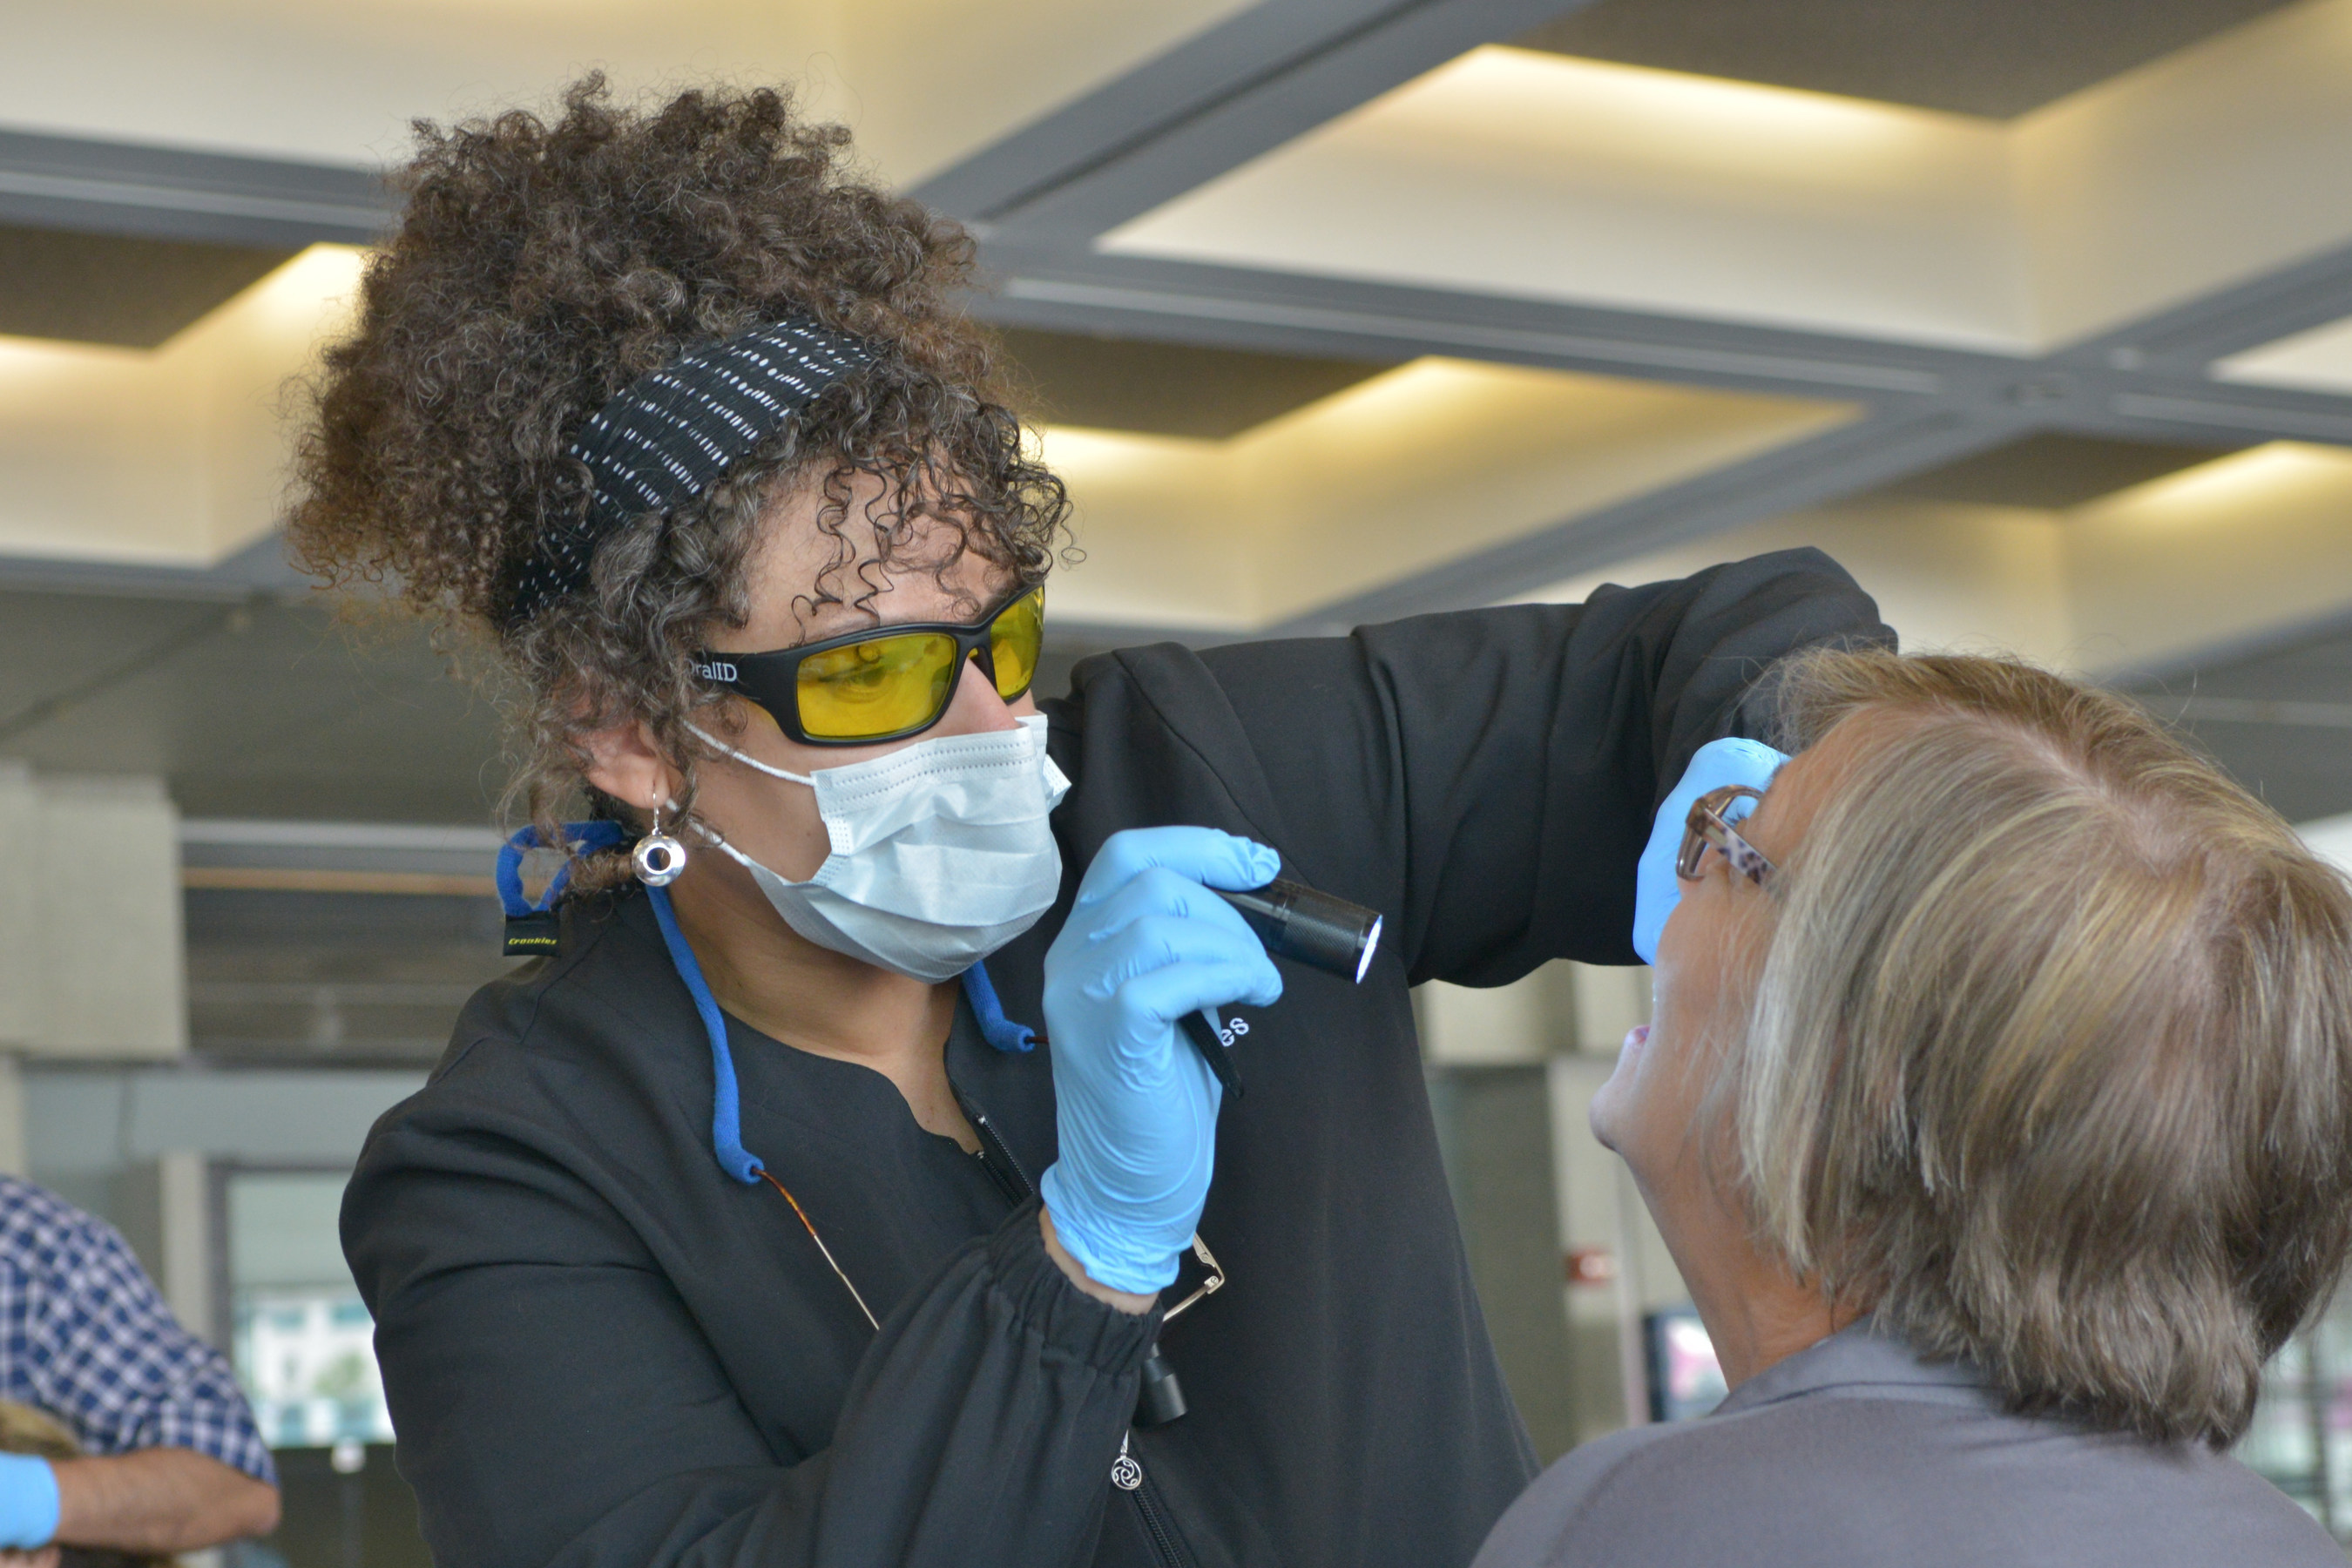 The Academy of General Dentistry will perform free oral cancer screenings July 15 and 16 at the Hynes Convention Center in Boston. Screenings are open to the public.